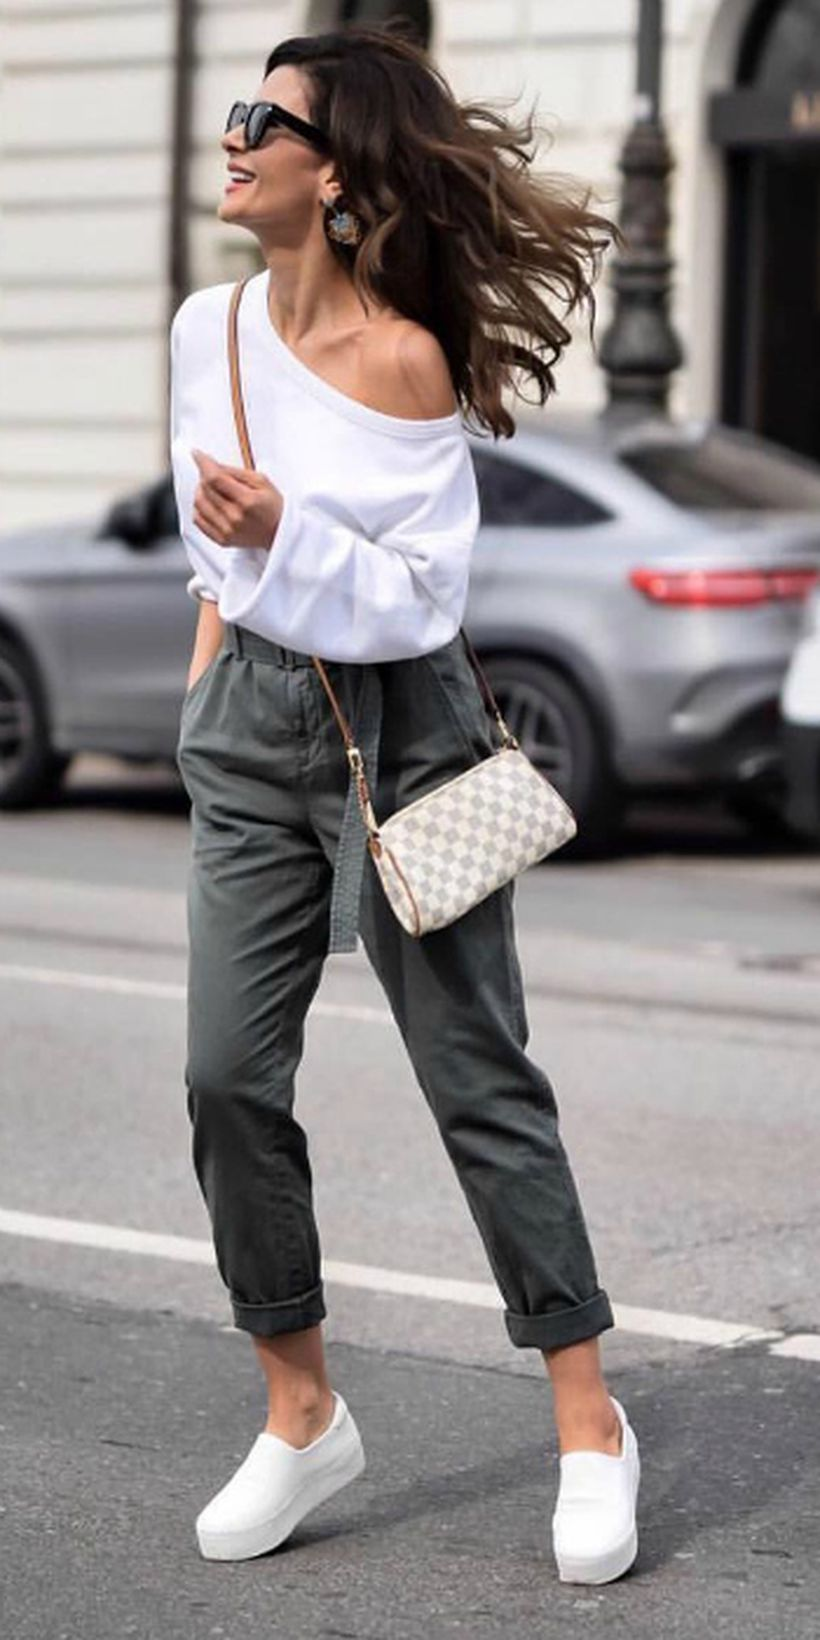 Inspiring simple casual street style outfits ideas 112